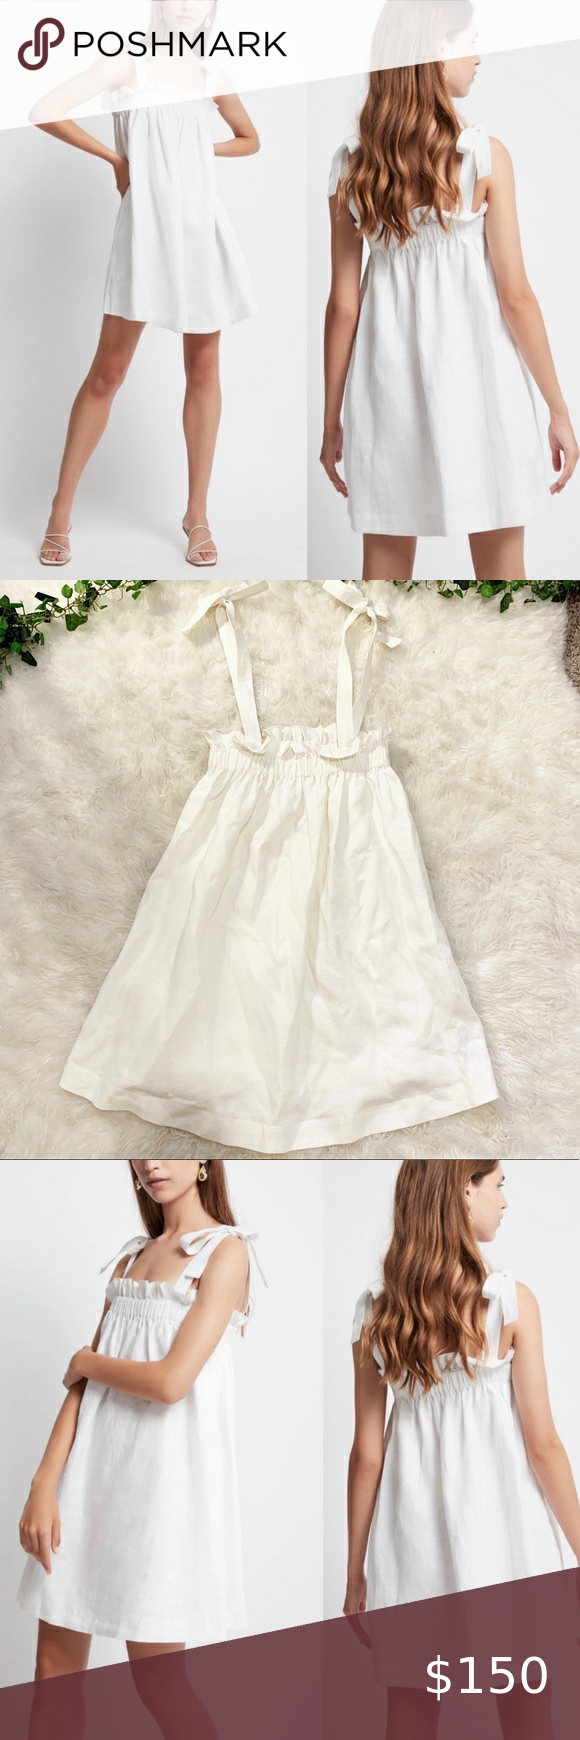 Aje Allegro Gathered Tiered Mini Dress White Linen A Cute Mini Dress From The Brand Aje This Dress Is 100 Linen With A Ga White Mini Dress Mini Dress Dresses [ 1740 x 580 Pixel ]